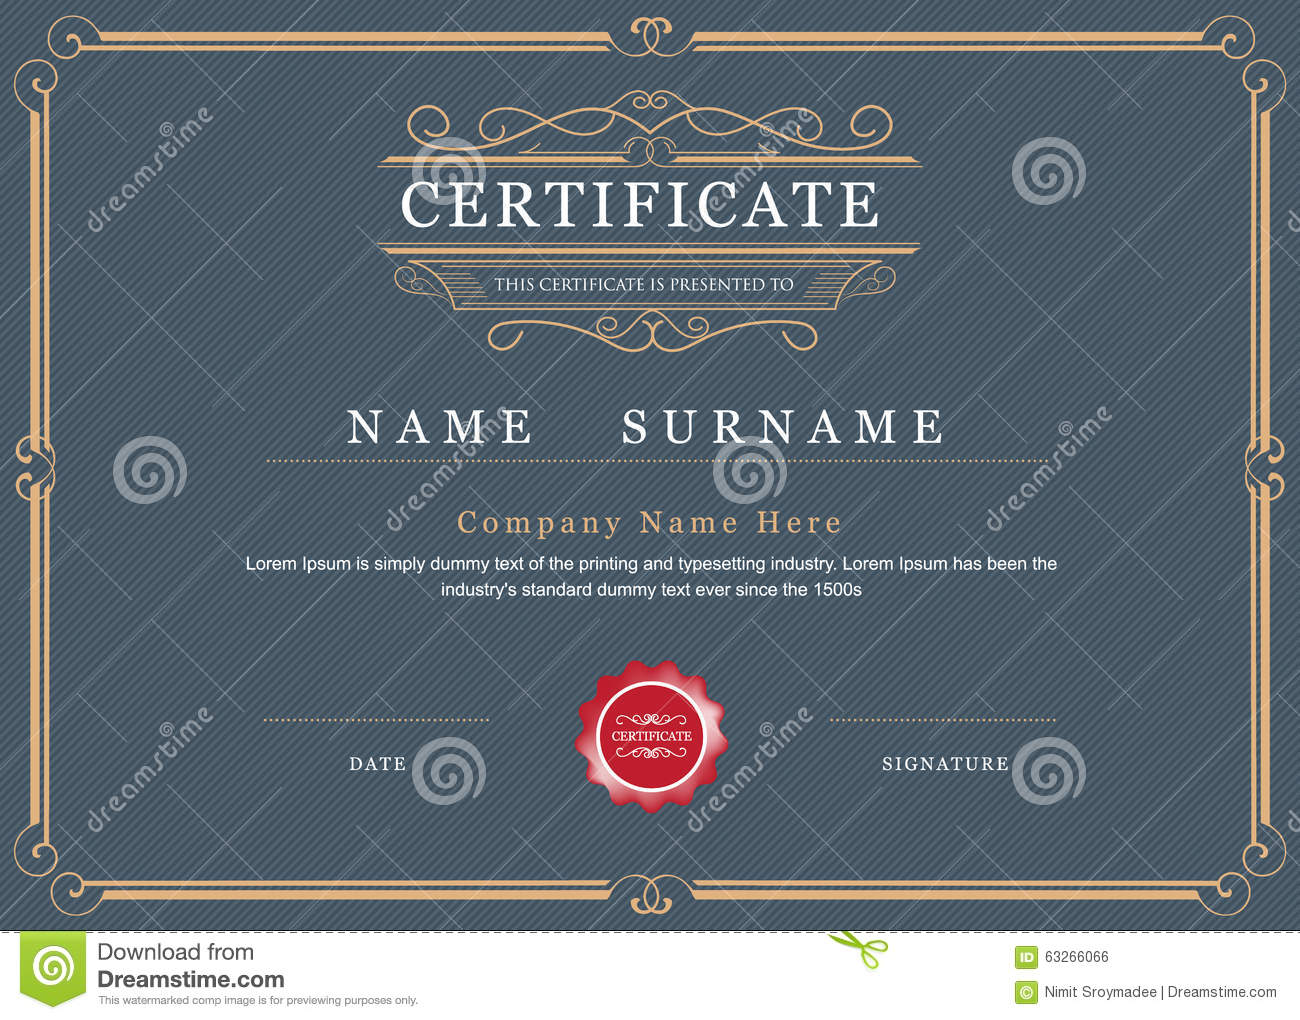 Certificate achievement frame border vector elegant